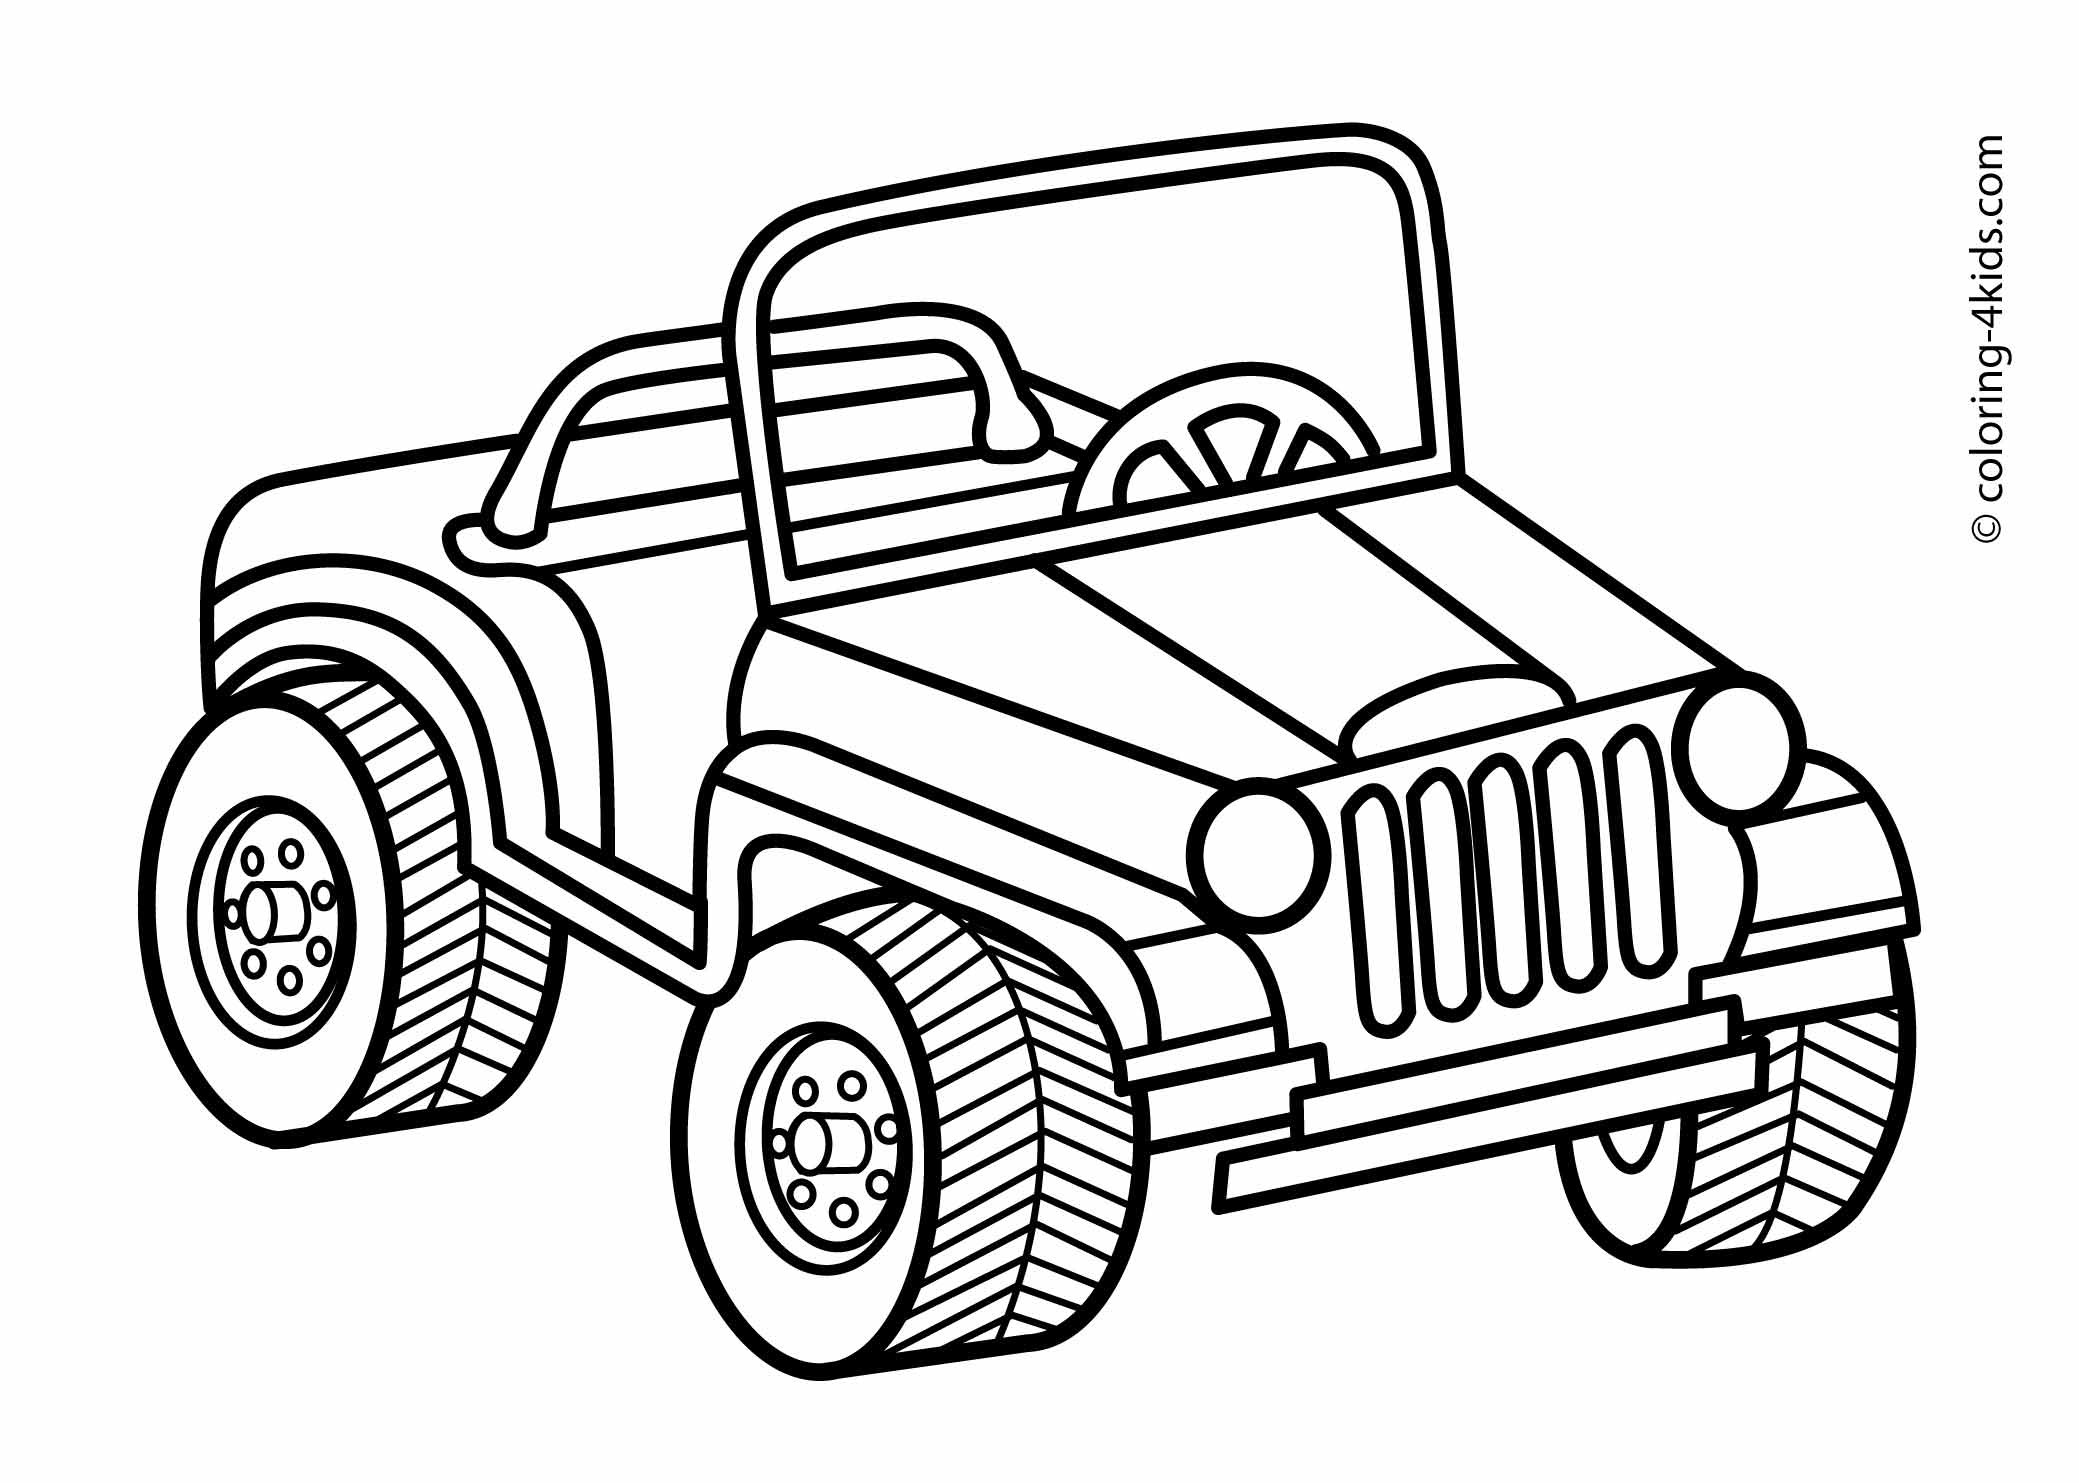 2079x1483 Ice Cream Truck Transportation Coloring Pages For Kids Beautiful